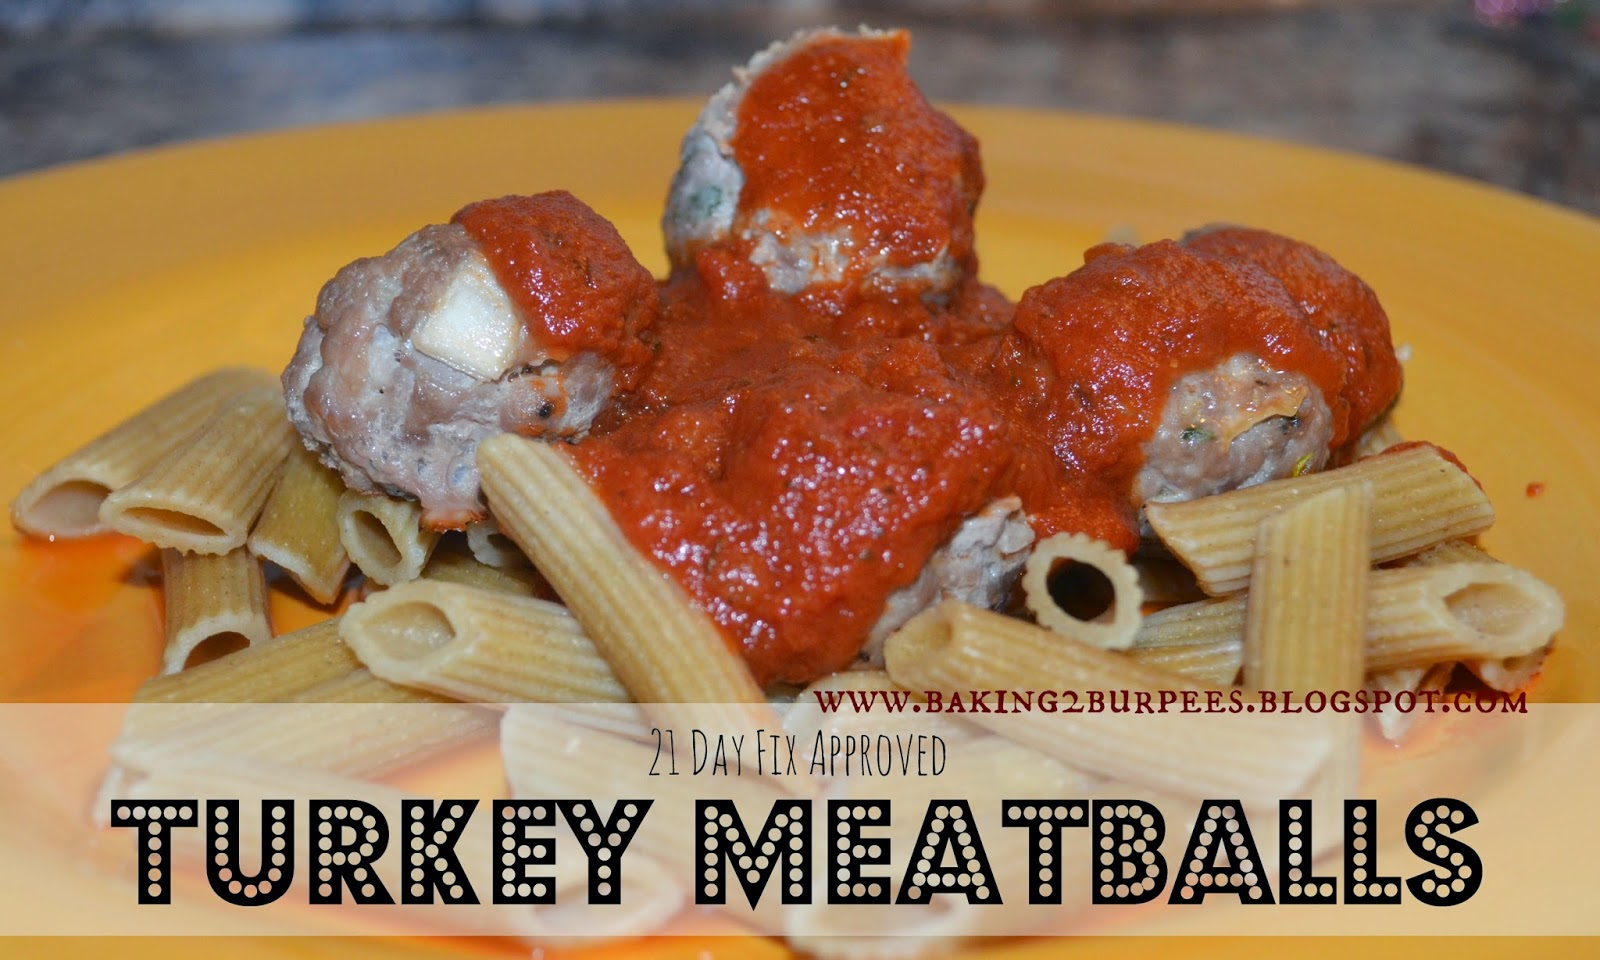 Erin Traill, diamond beachbody coach, Turkey Meatballs, 21 day fix approved recipe, Autumn Calabrese, healthy recipe, spaghetti and meatballs, fit mom, nurse, pittsburgh,